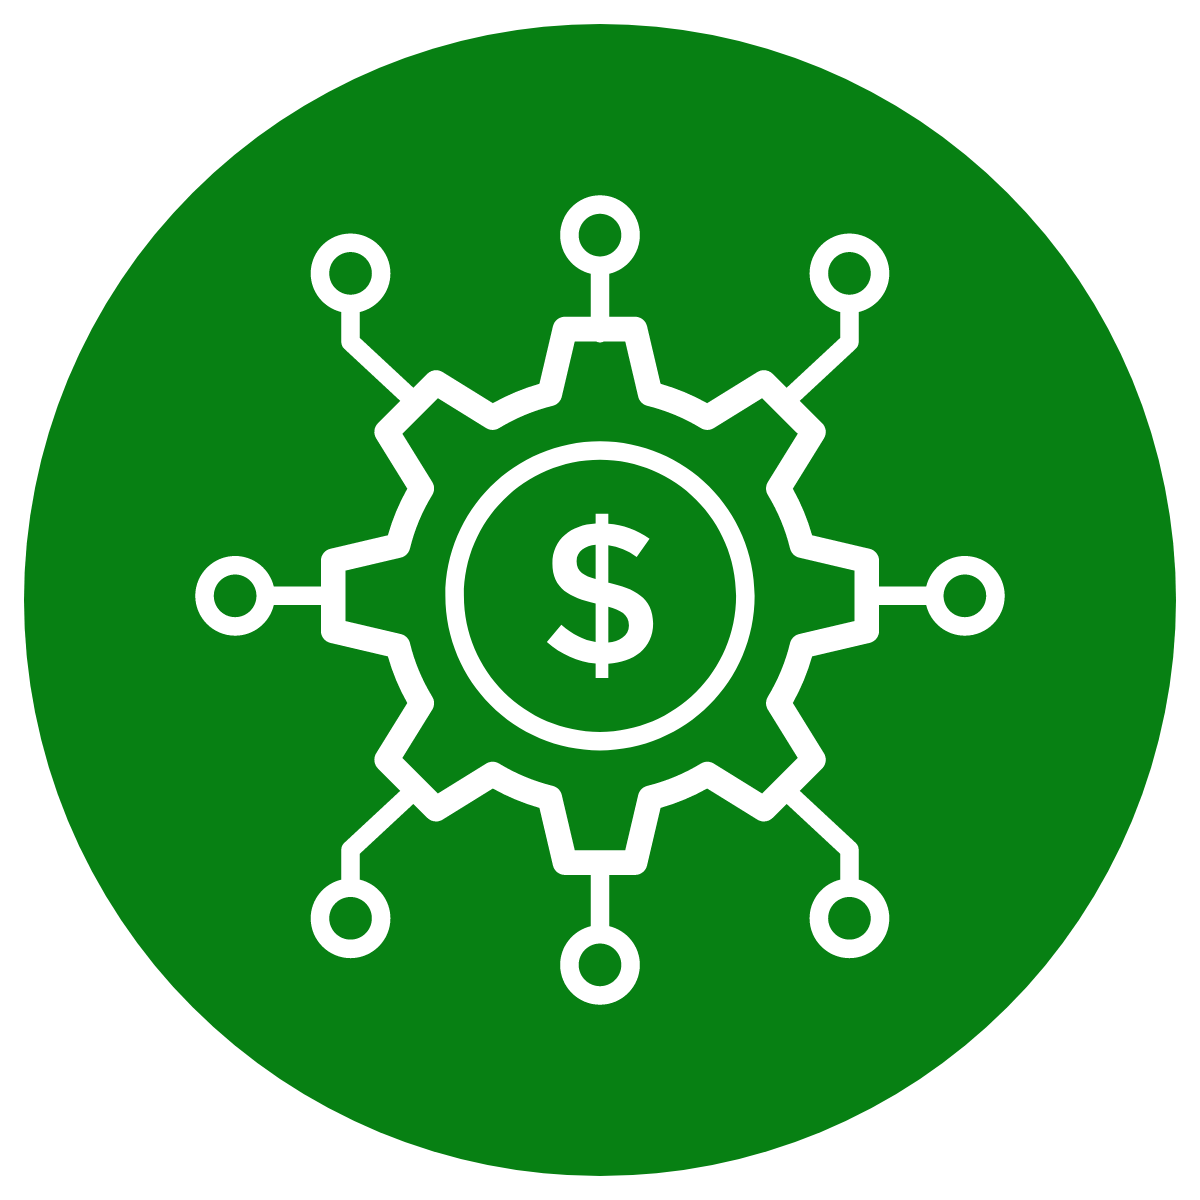 simple line drawing of a dollar symbol surrounded by circuit nodes